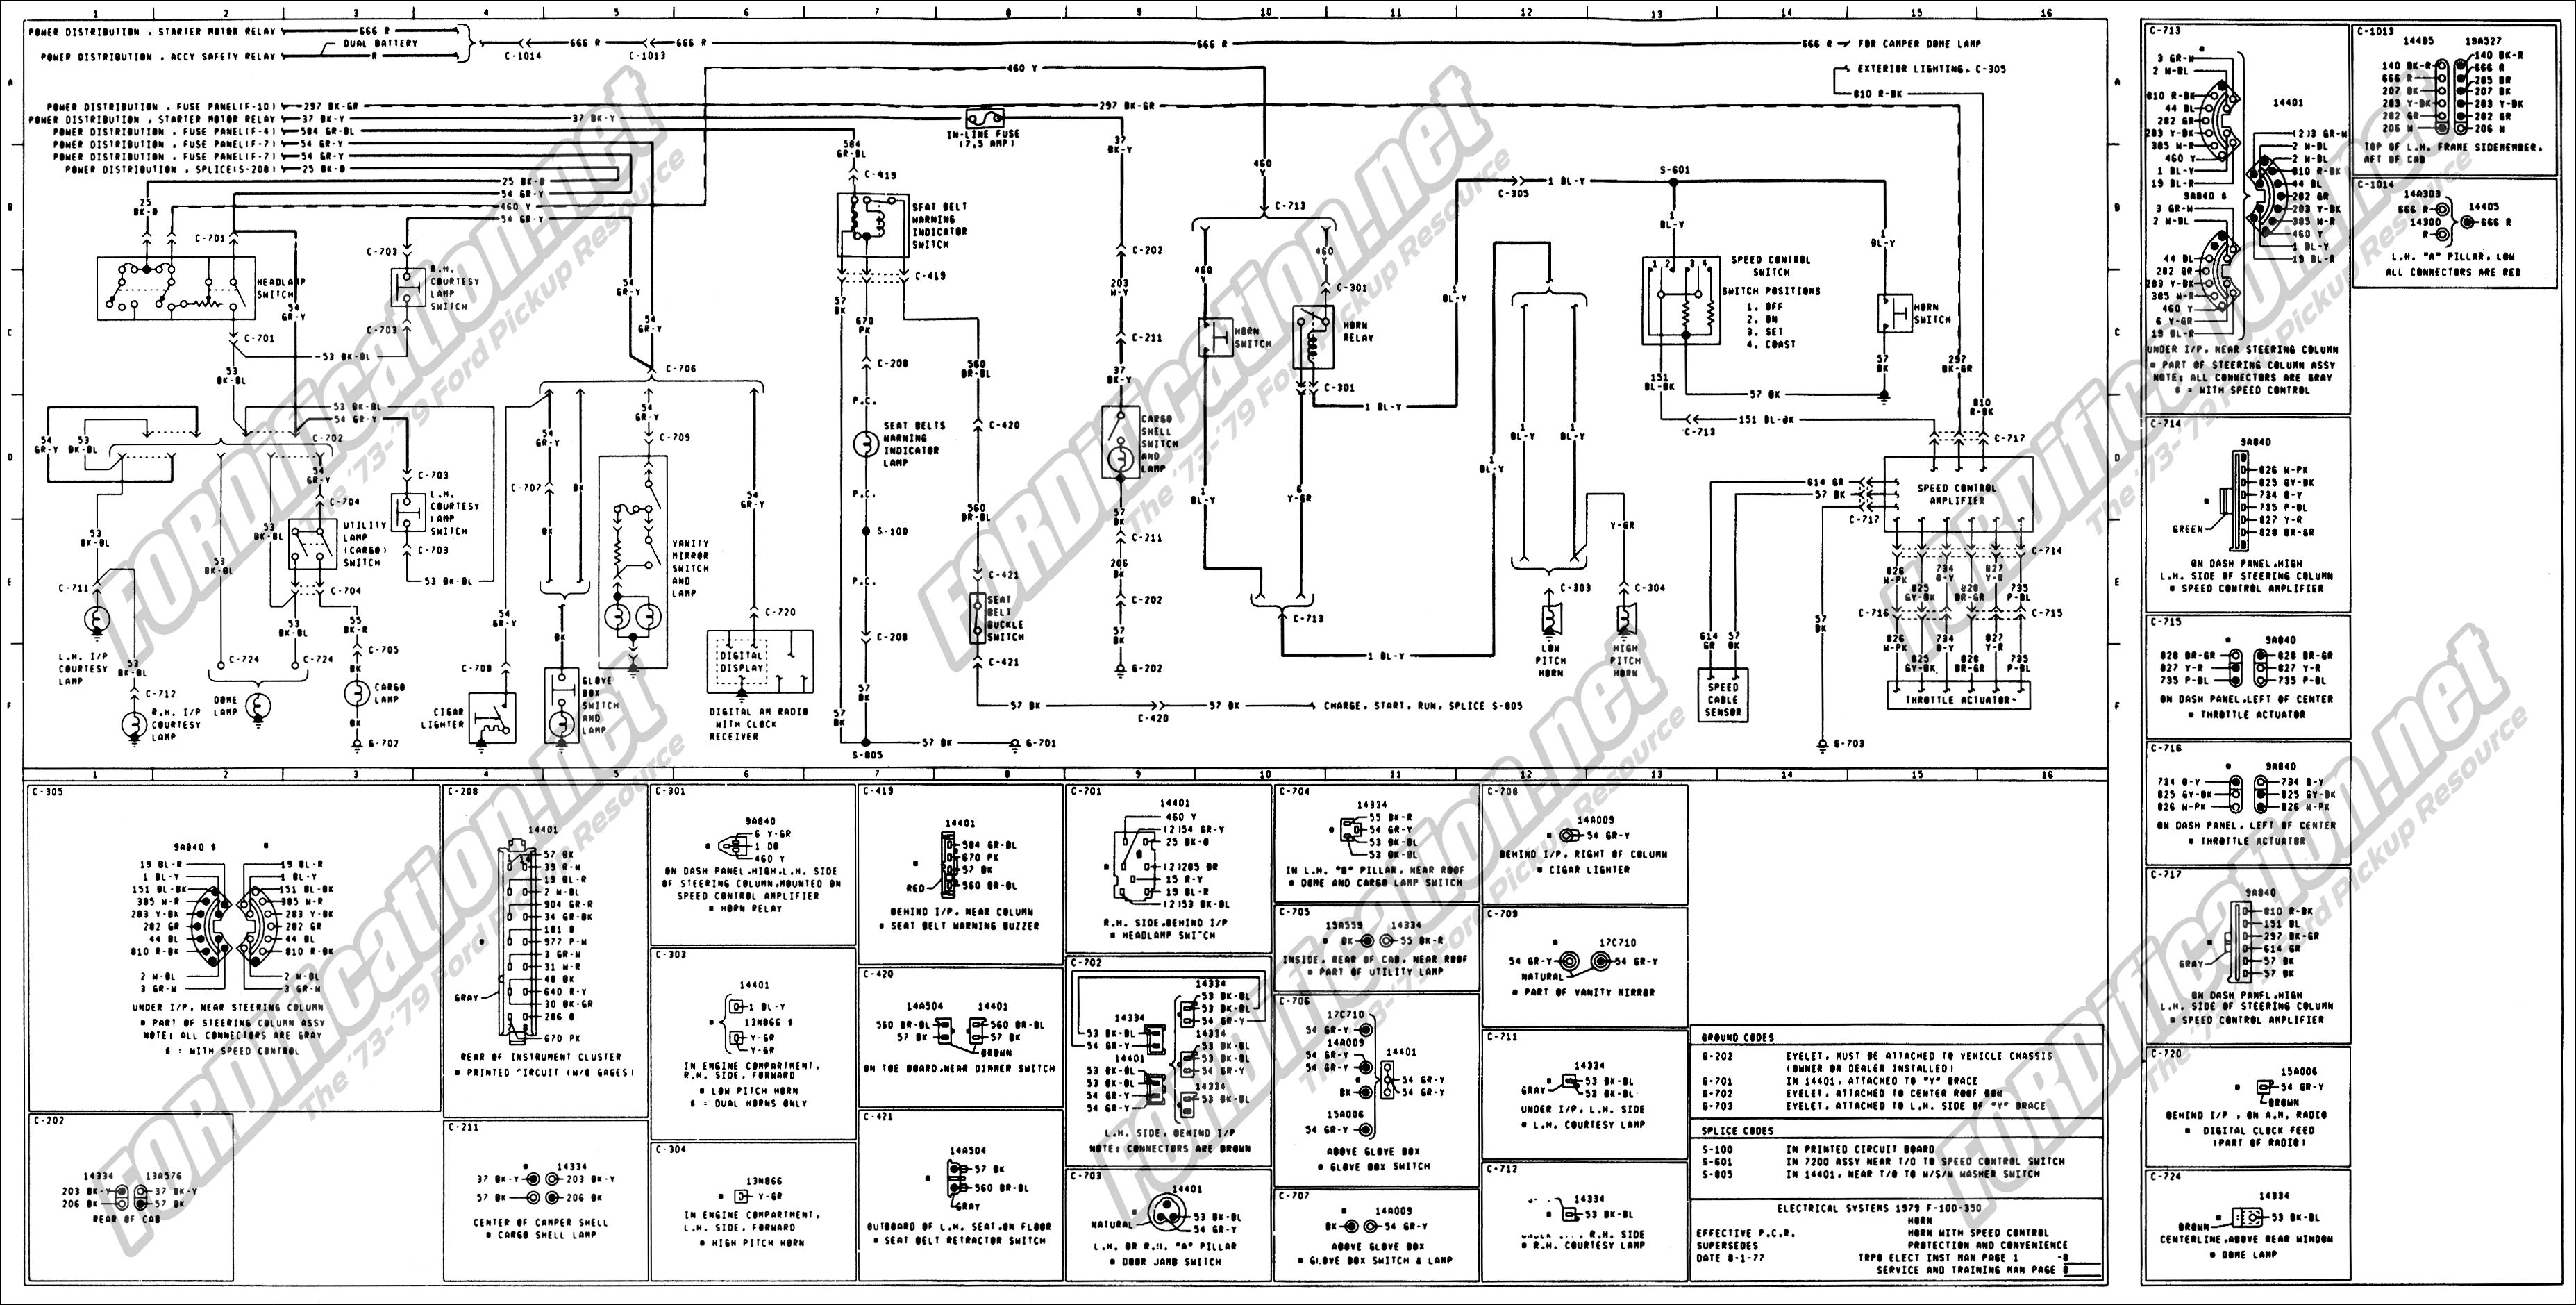 wiring_79master_8of9 1973 1979 ford truck wiring diagrams & schematics fordification net Ford F-250 Wiring Diagram at mifinder.co